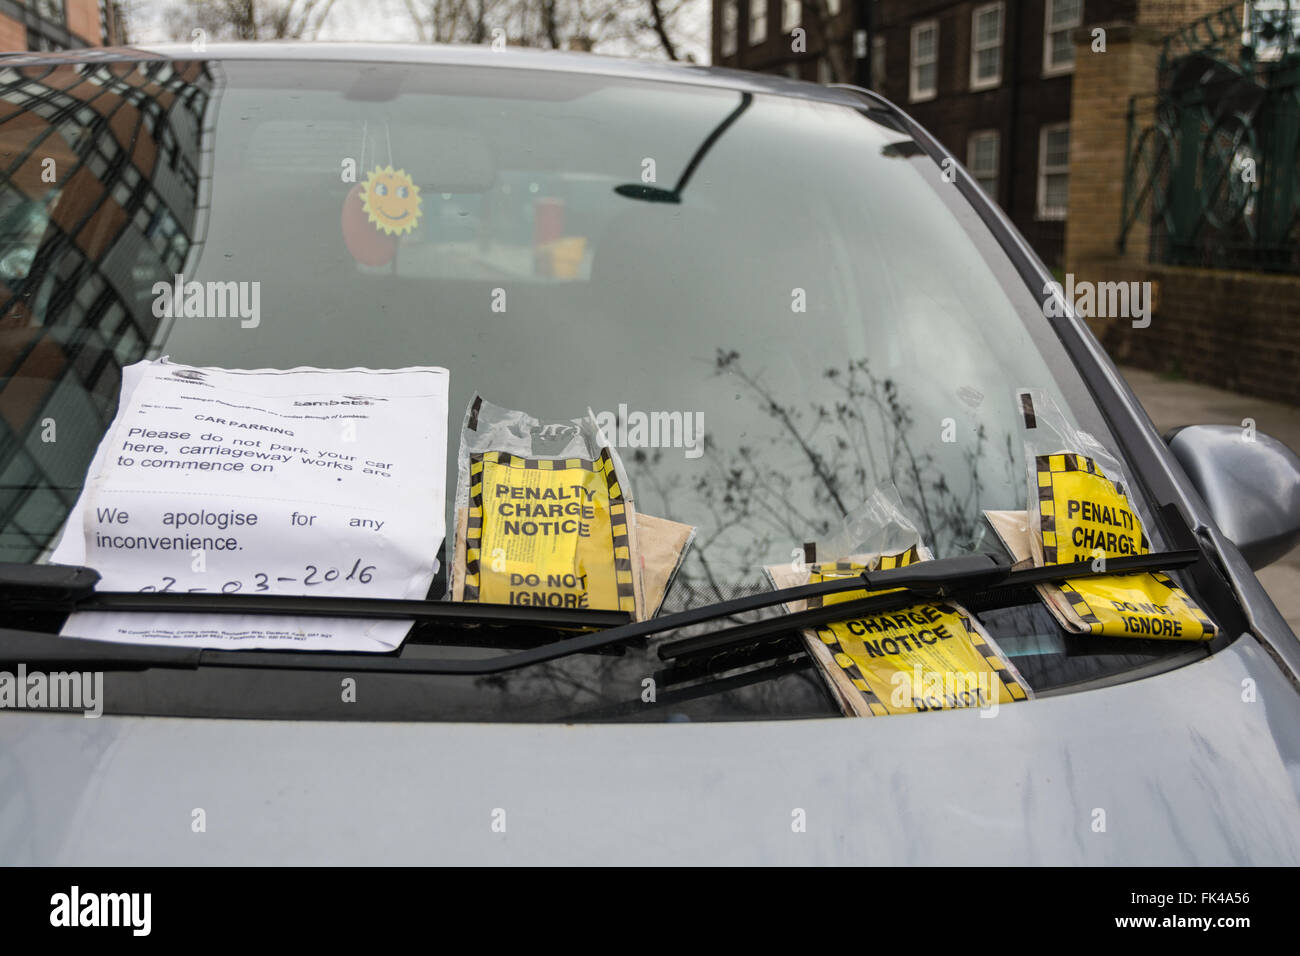 Three penalty charge notice tickets on a car windscreen in London, England, UK - Stock Image